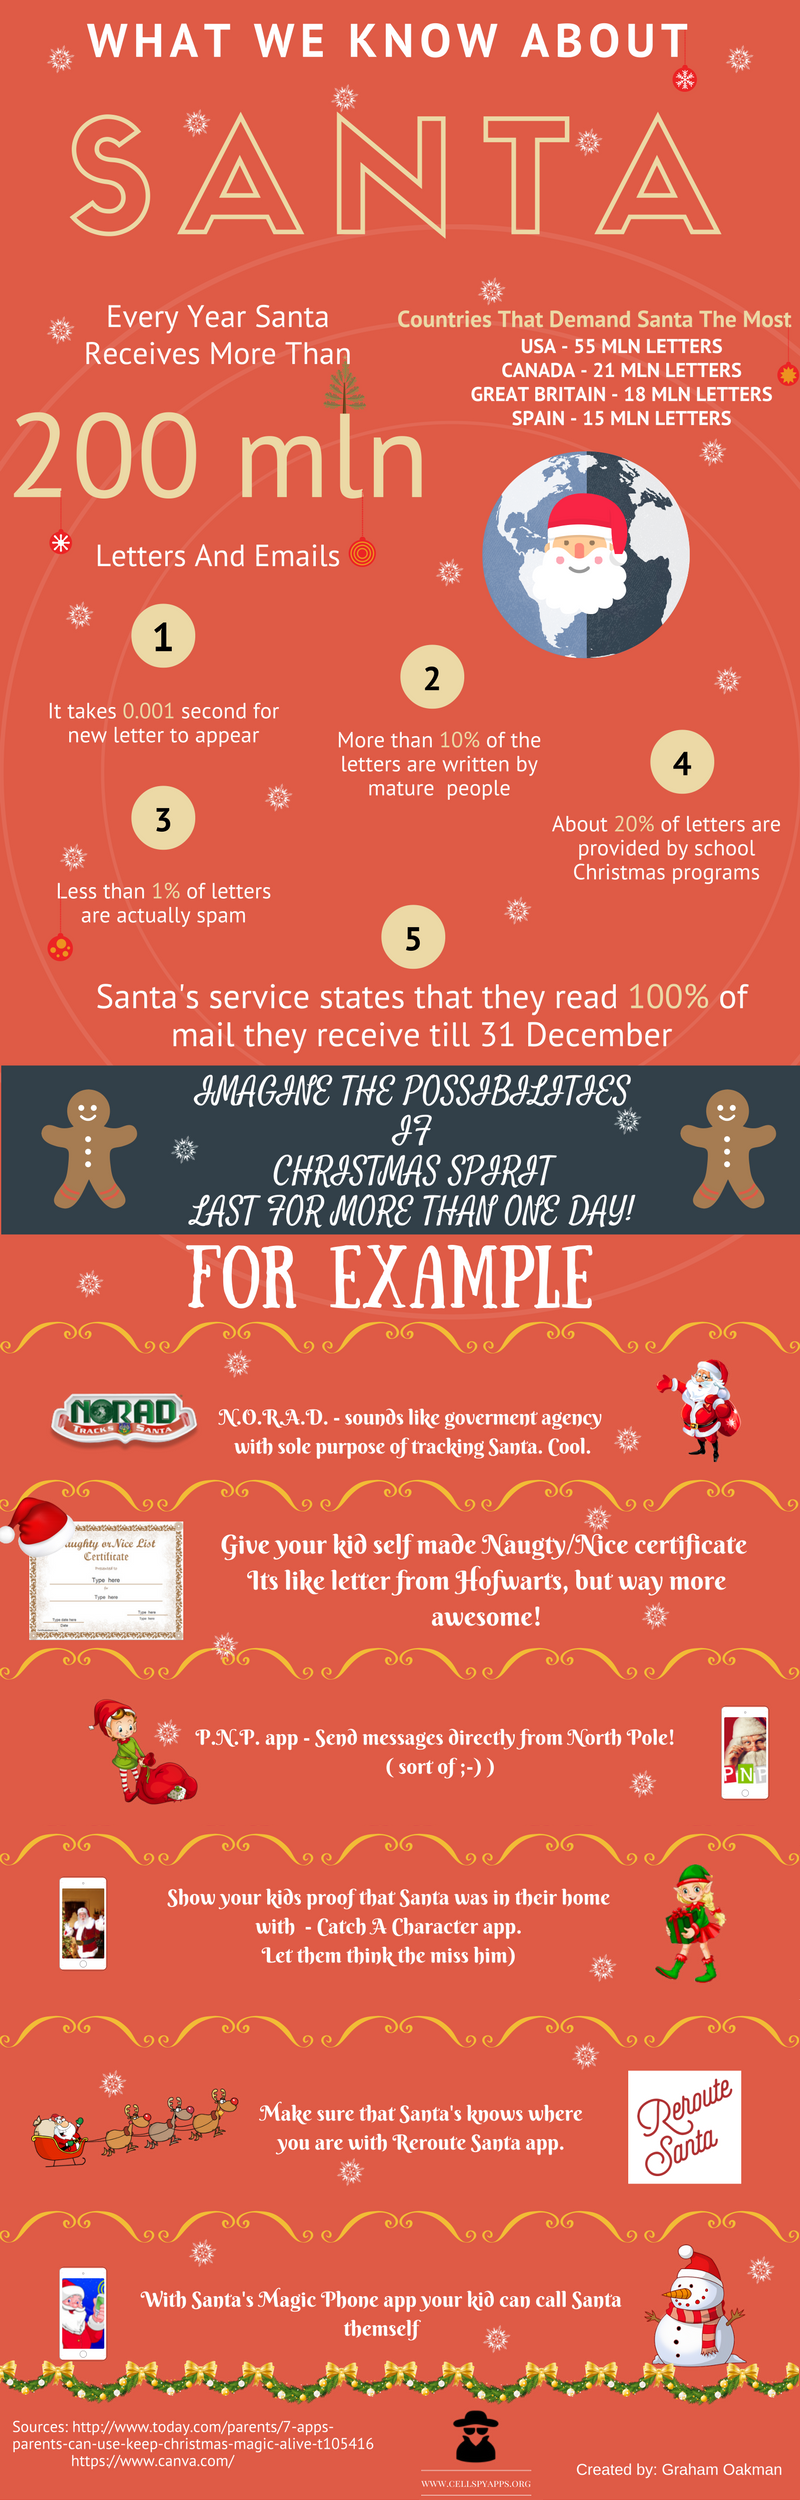 Santa Claus facts and mobile apps